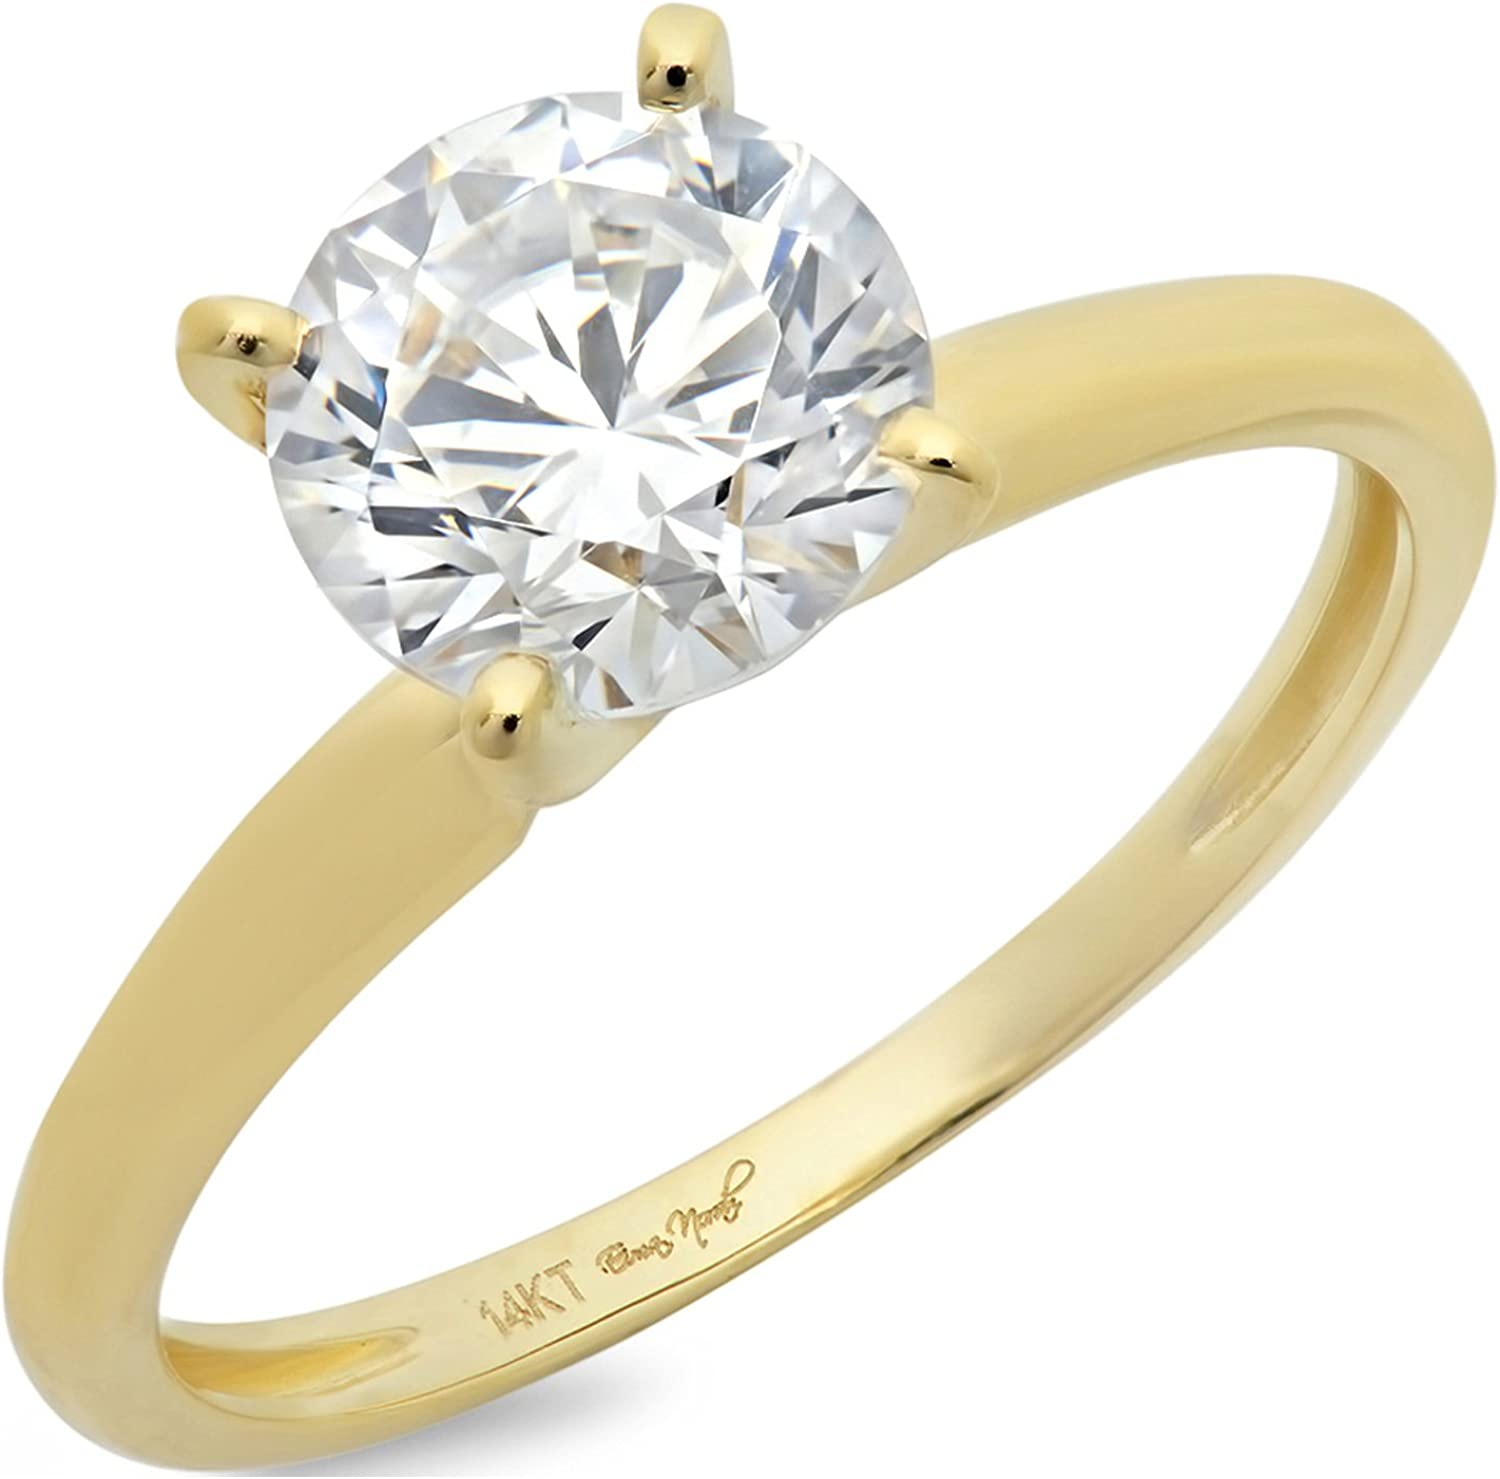 14k Yellow Gold 0.97cttw Round Cut VVS1 Ideal Gemstone Solitaire Moissanite Engagement Promise Ring Statement Anniversary Bridal Wedding by Clara Pucci